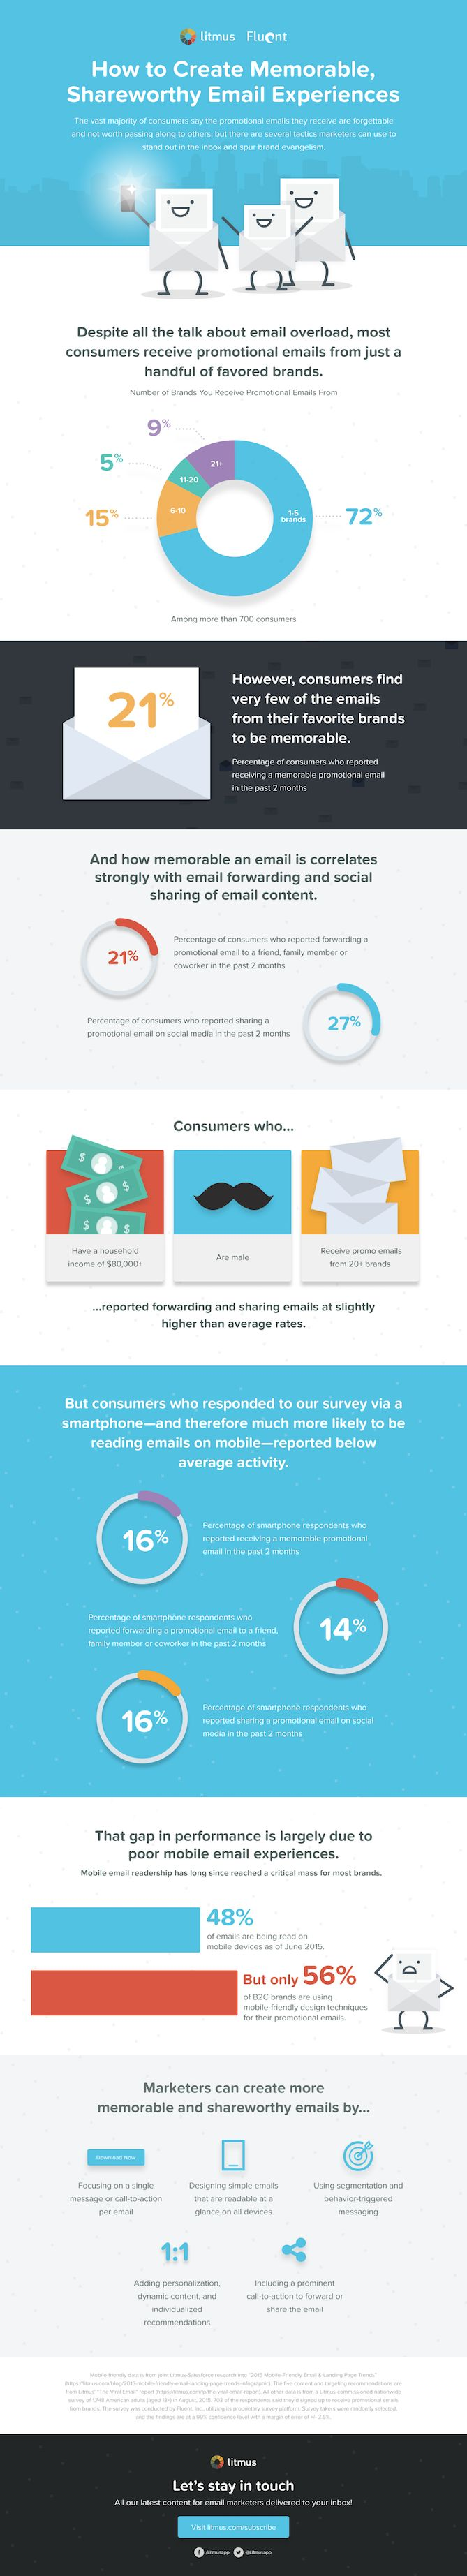 How to Create Memorable, Shareworthy Email Experiences [Infographic], via @HubSpot